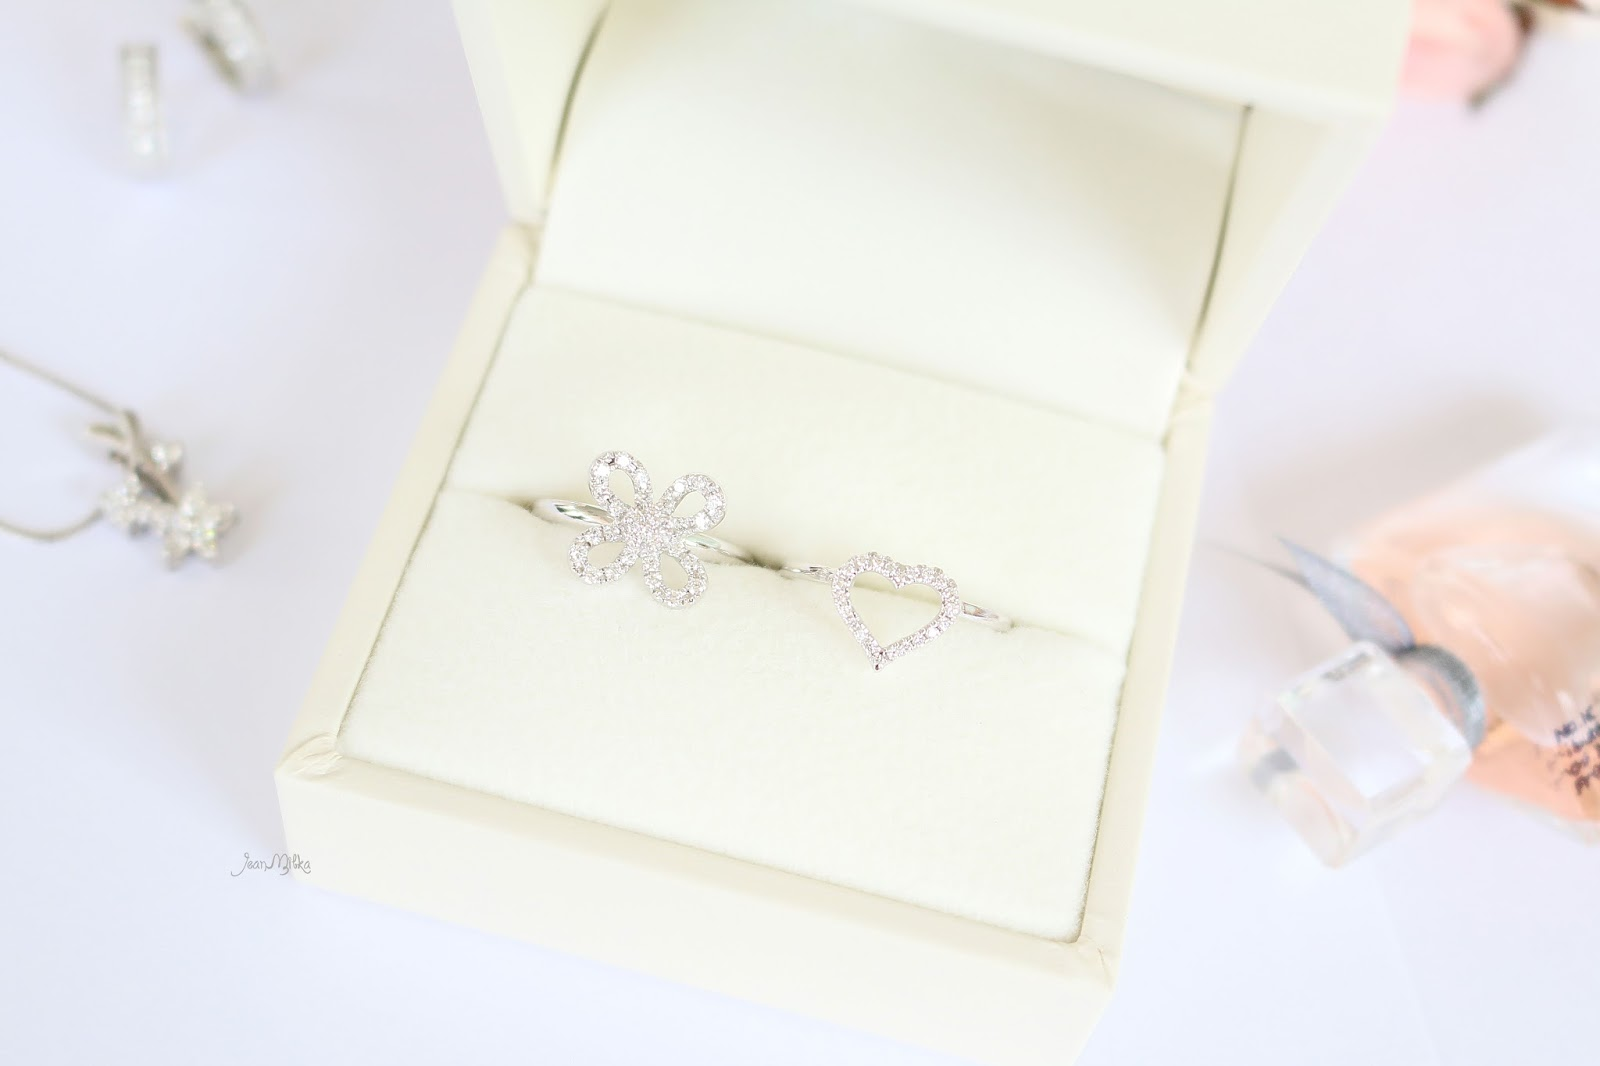 orori, orori jewelry, diamond, reivew, online shop, indonesia, jakarta, neclage, ring, earrings, flower